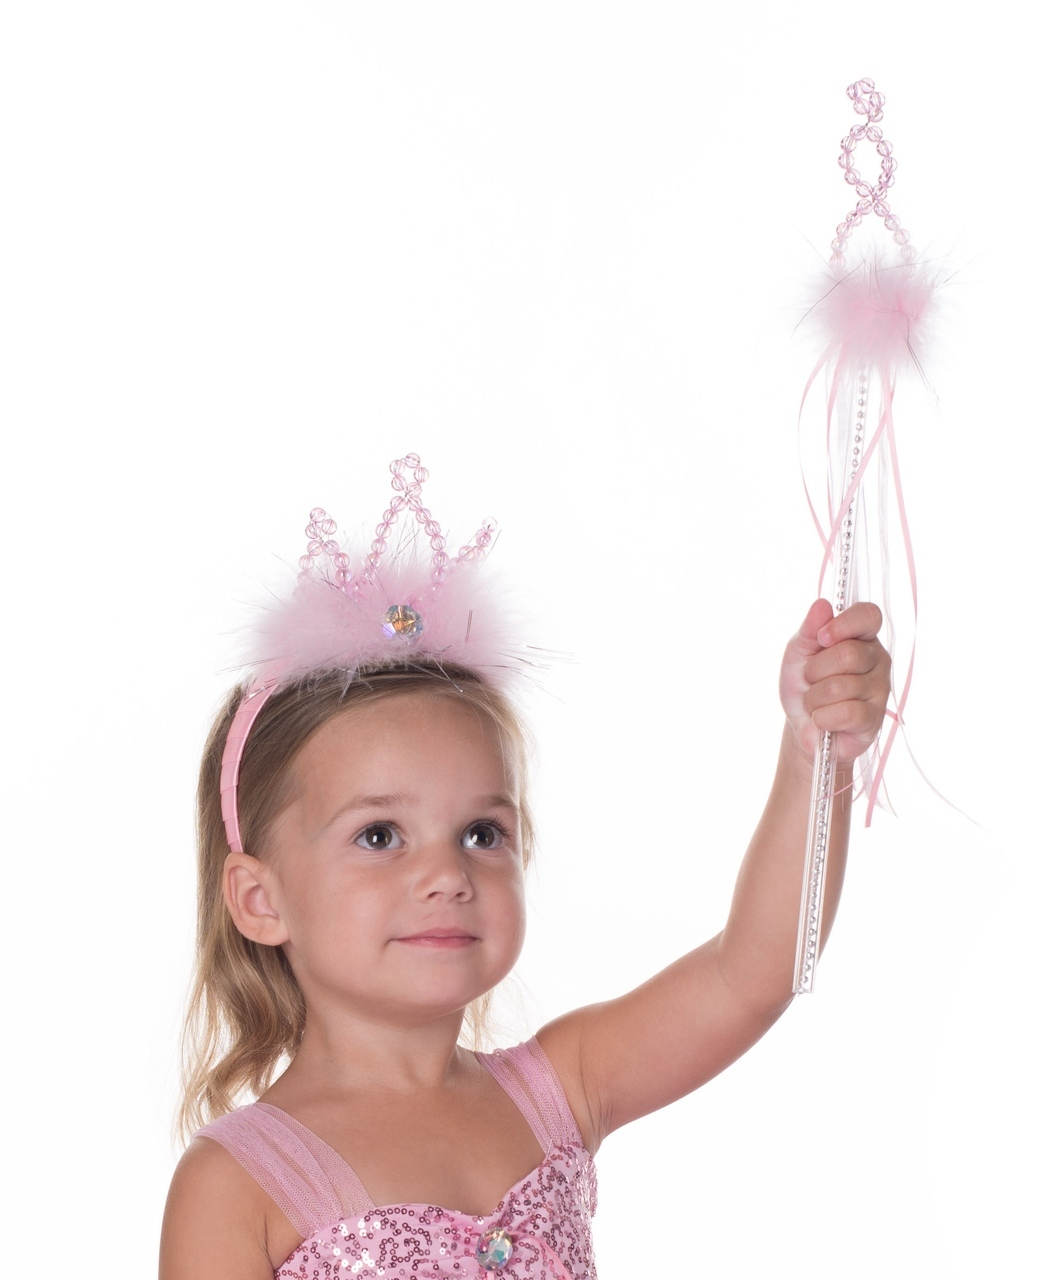 Wholesale Beauty Vendors Pink Beauty Tiara Wand Imagination Creations Wholesale